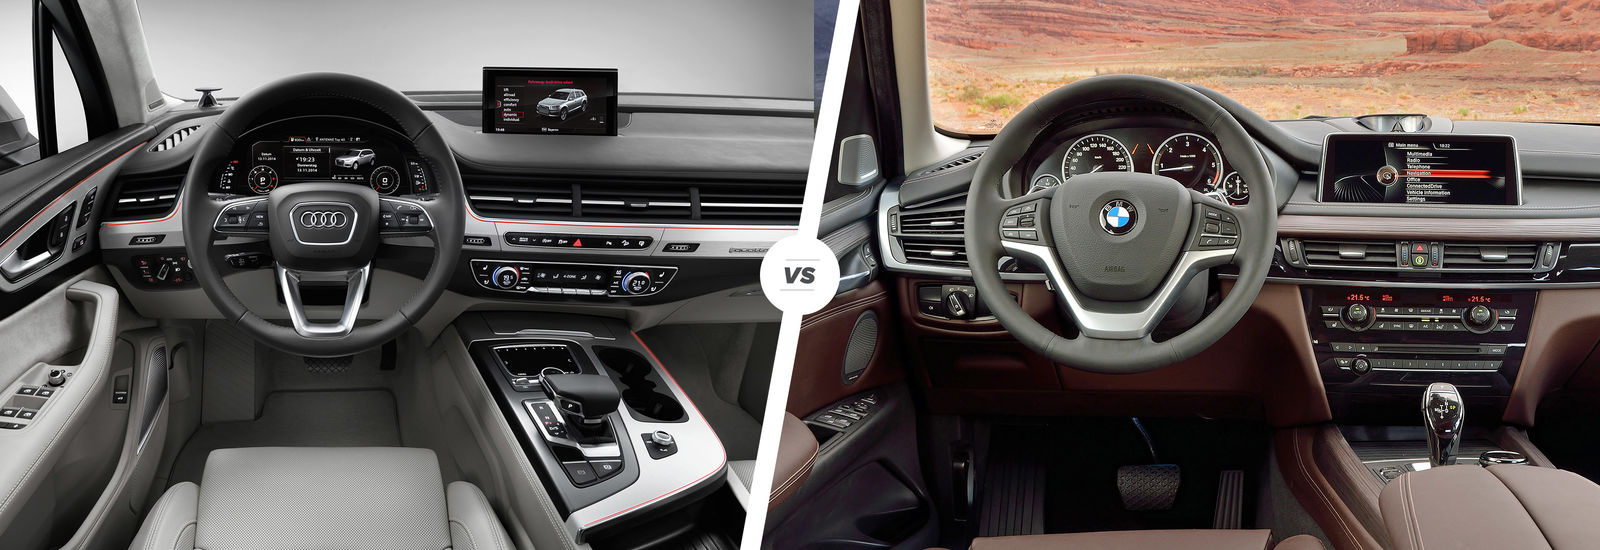 Audi Q7 Vs Bmw X5 Luxury Suv Showdown Carwow